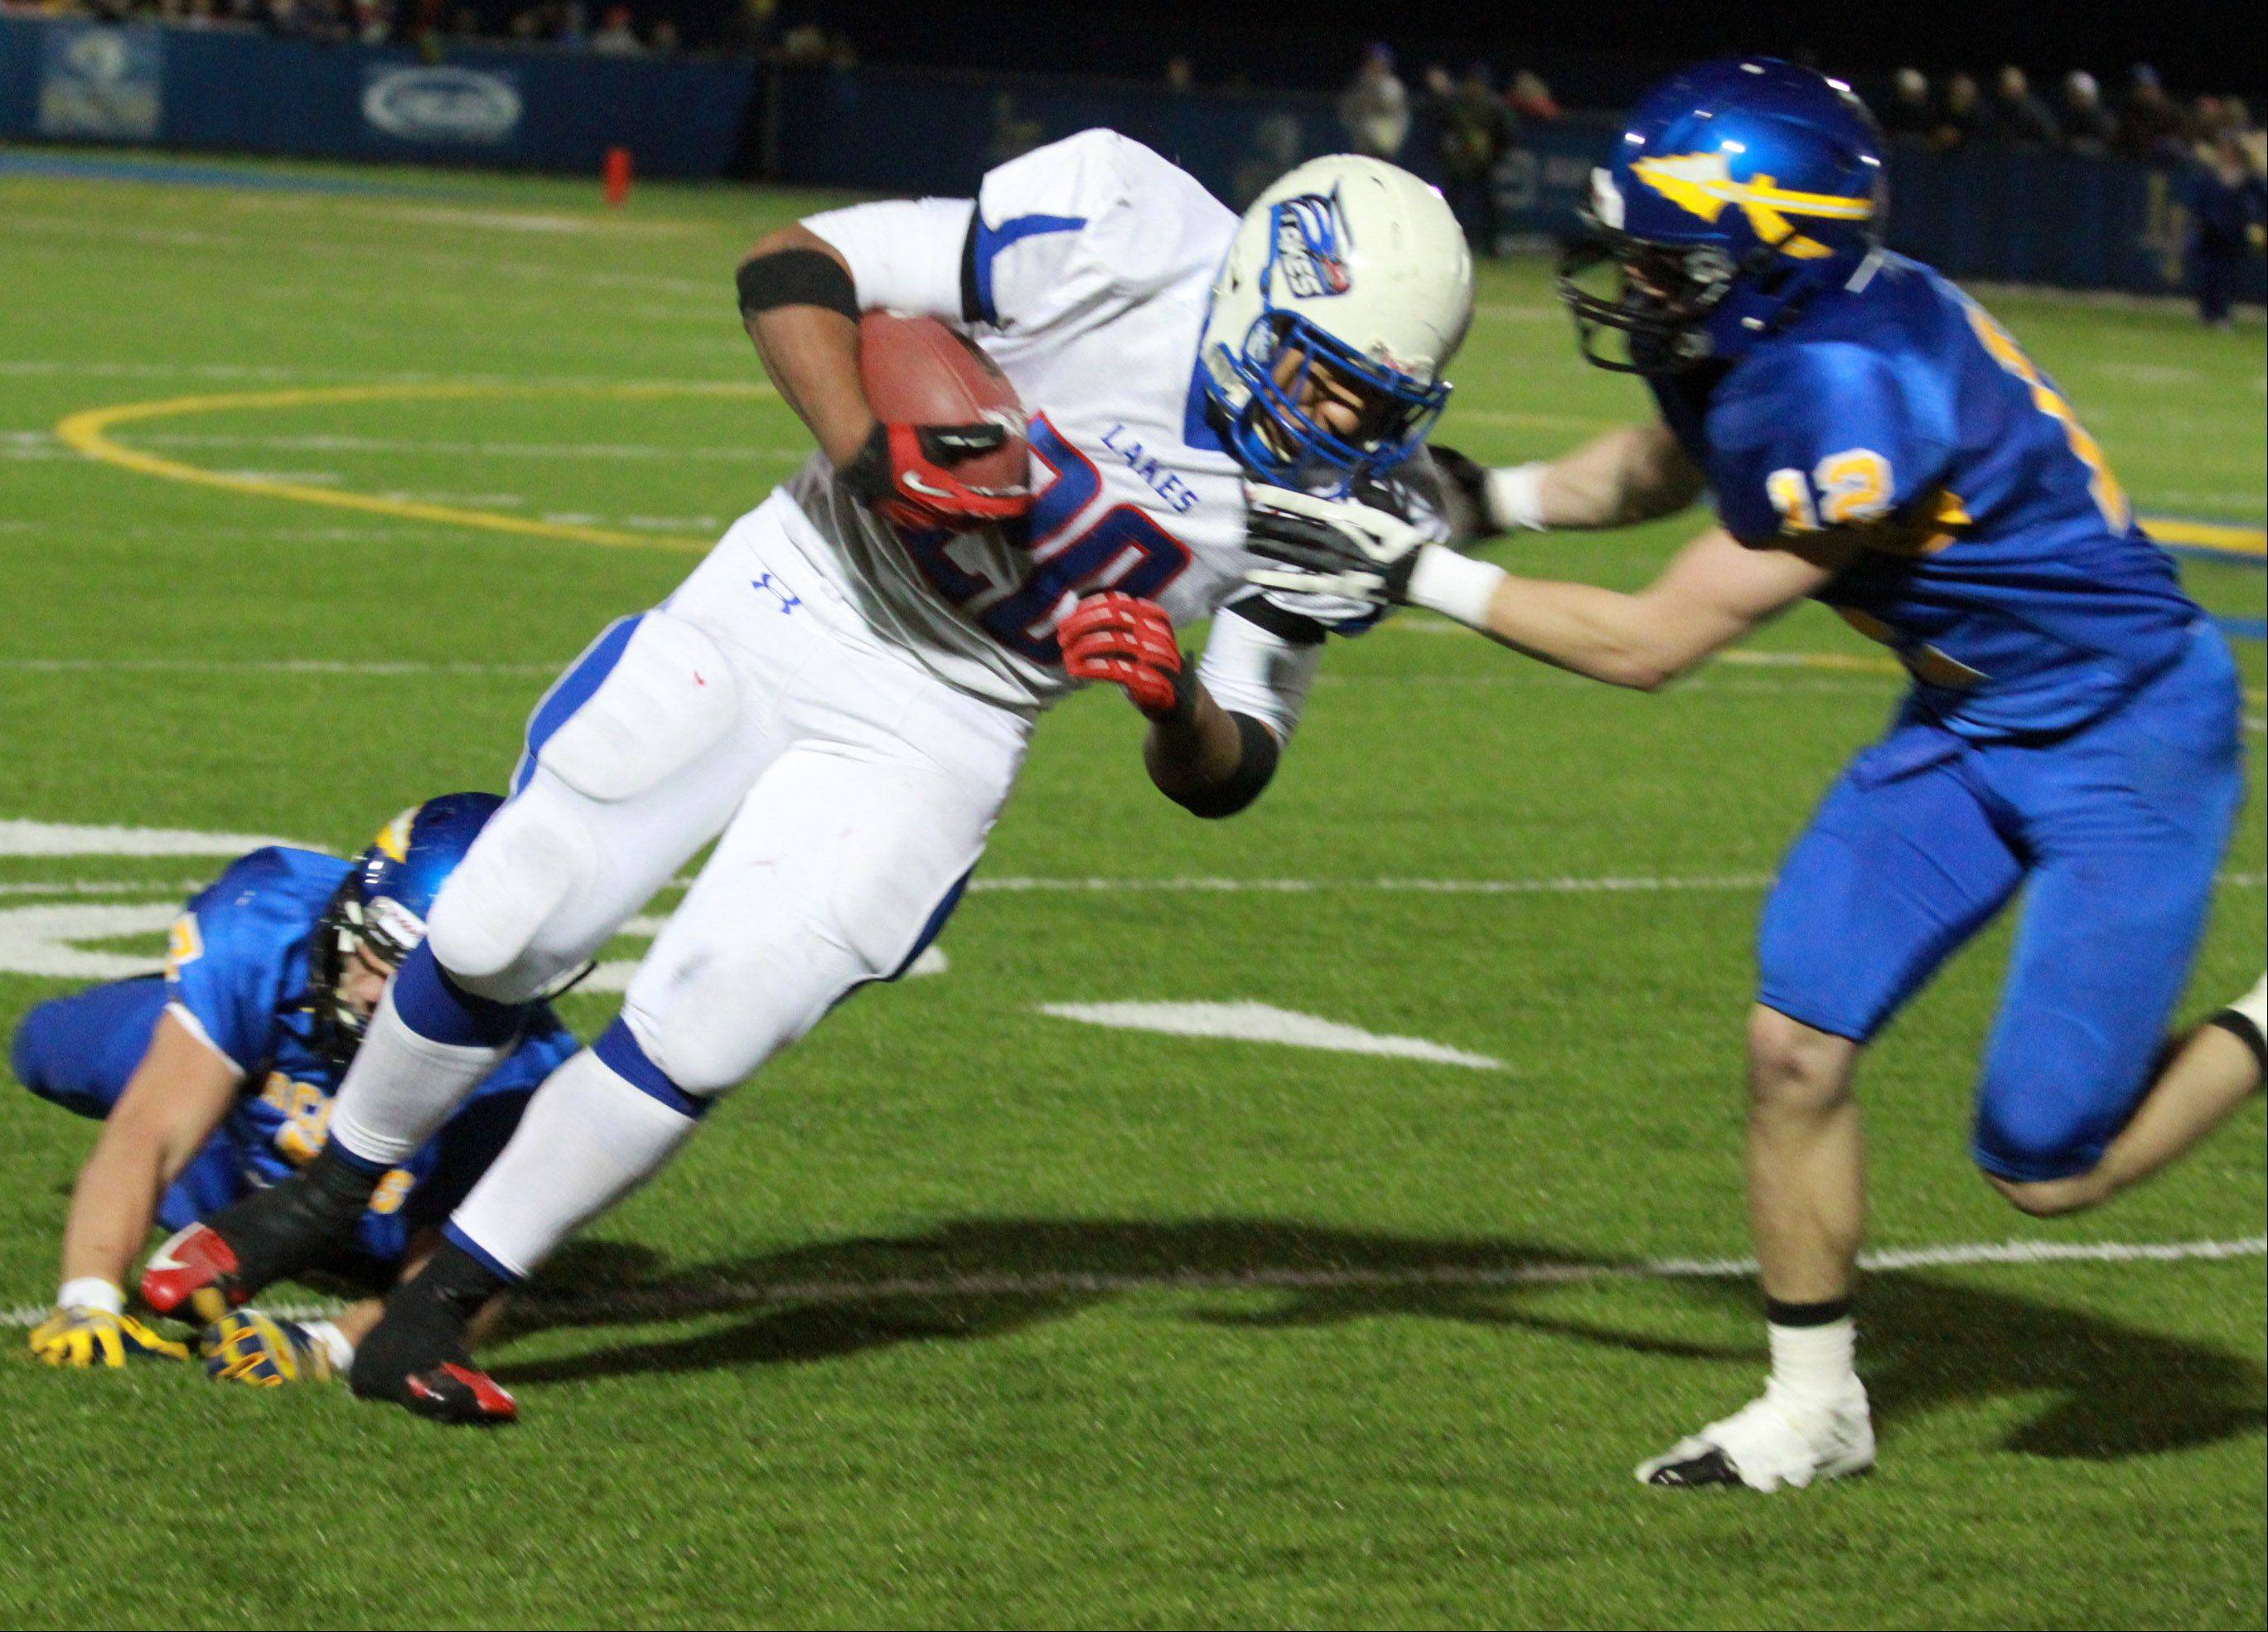 Lakes running-back Direll Clark is pulled down by two Lake Forest defenders late in the fourth quarter.